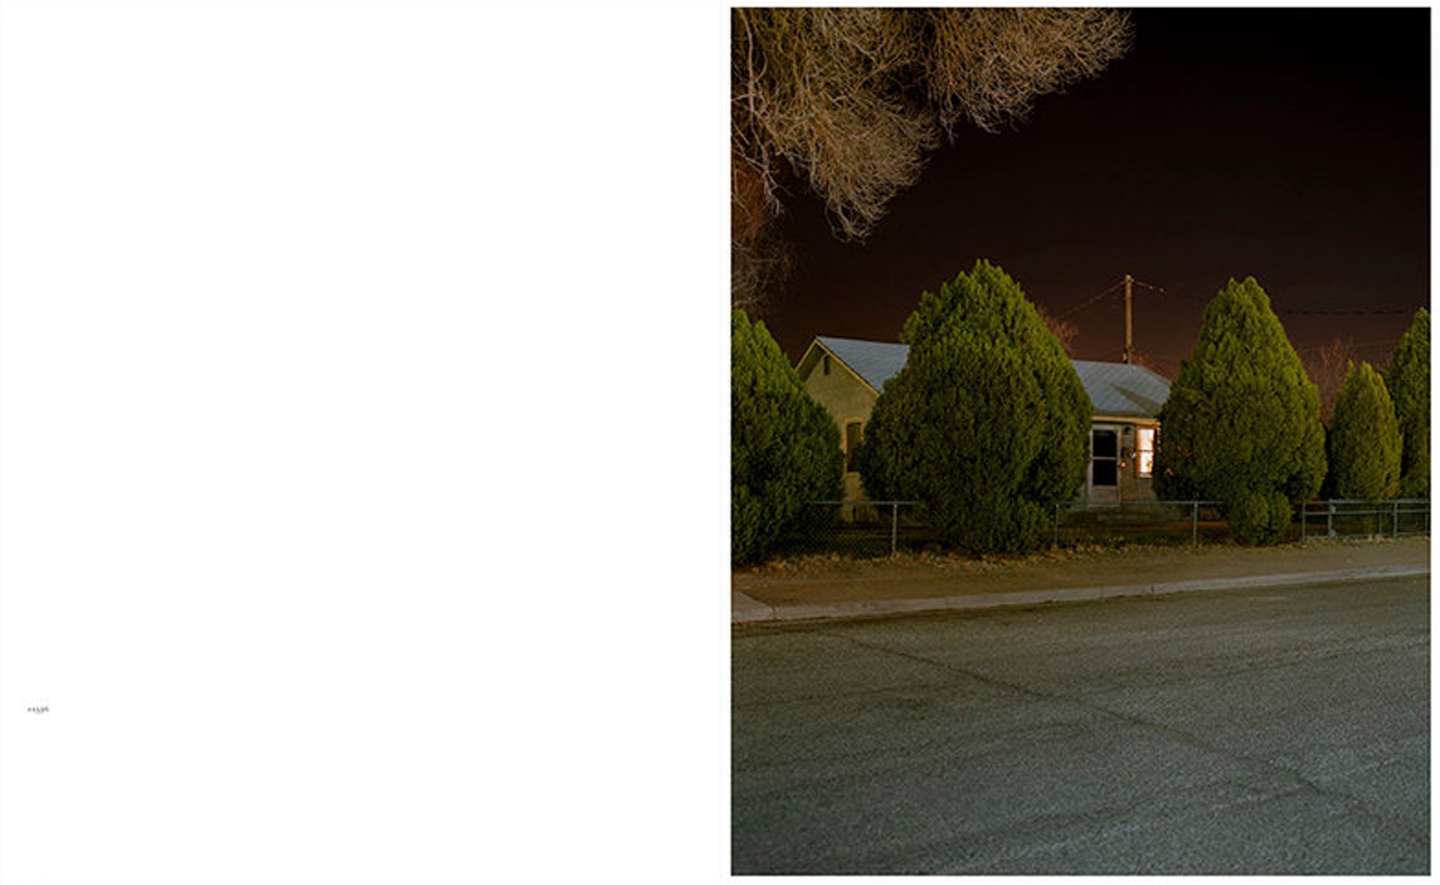 Todd Hido: House Hunting (Remastered Third Edition), Slipcased Limited Edition of 250 [SIGNED & NUMBERED] - PREORDER (SHIPPING LATE NOVEMBER)